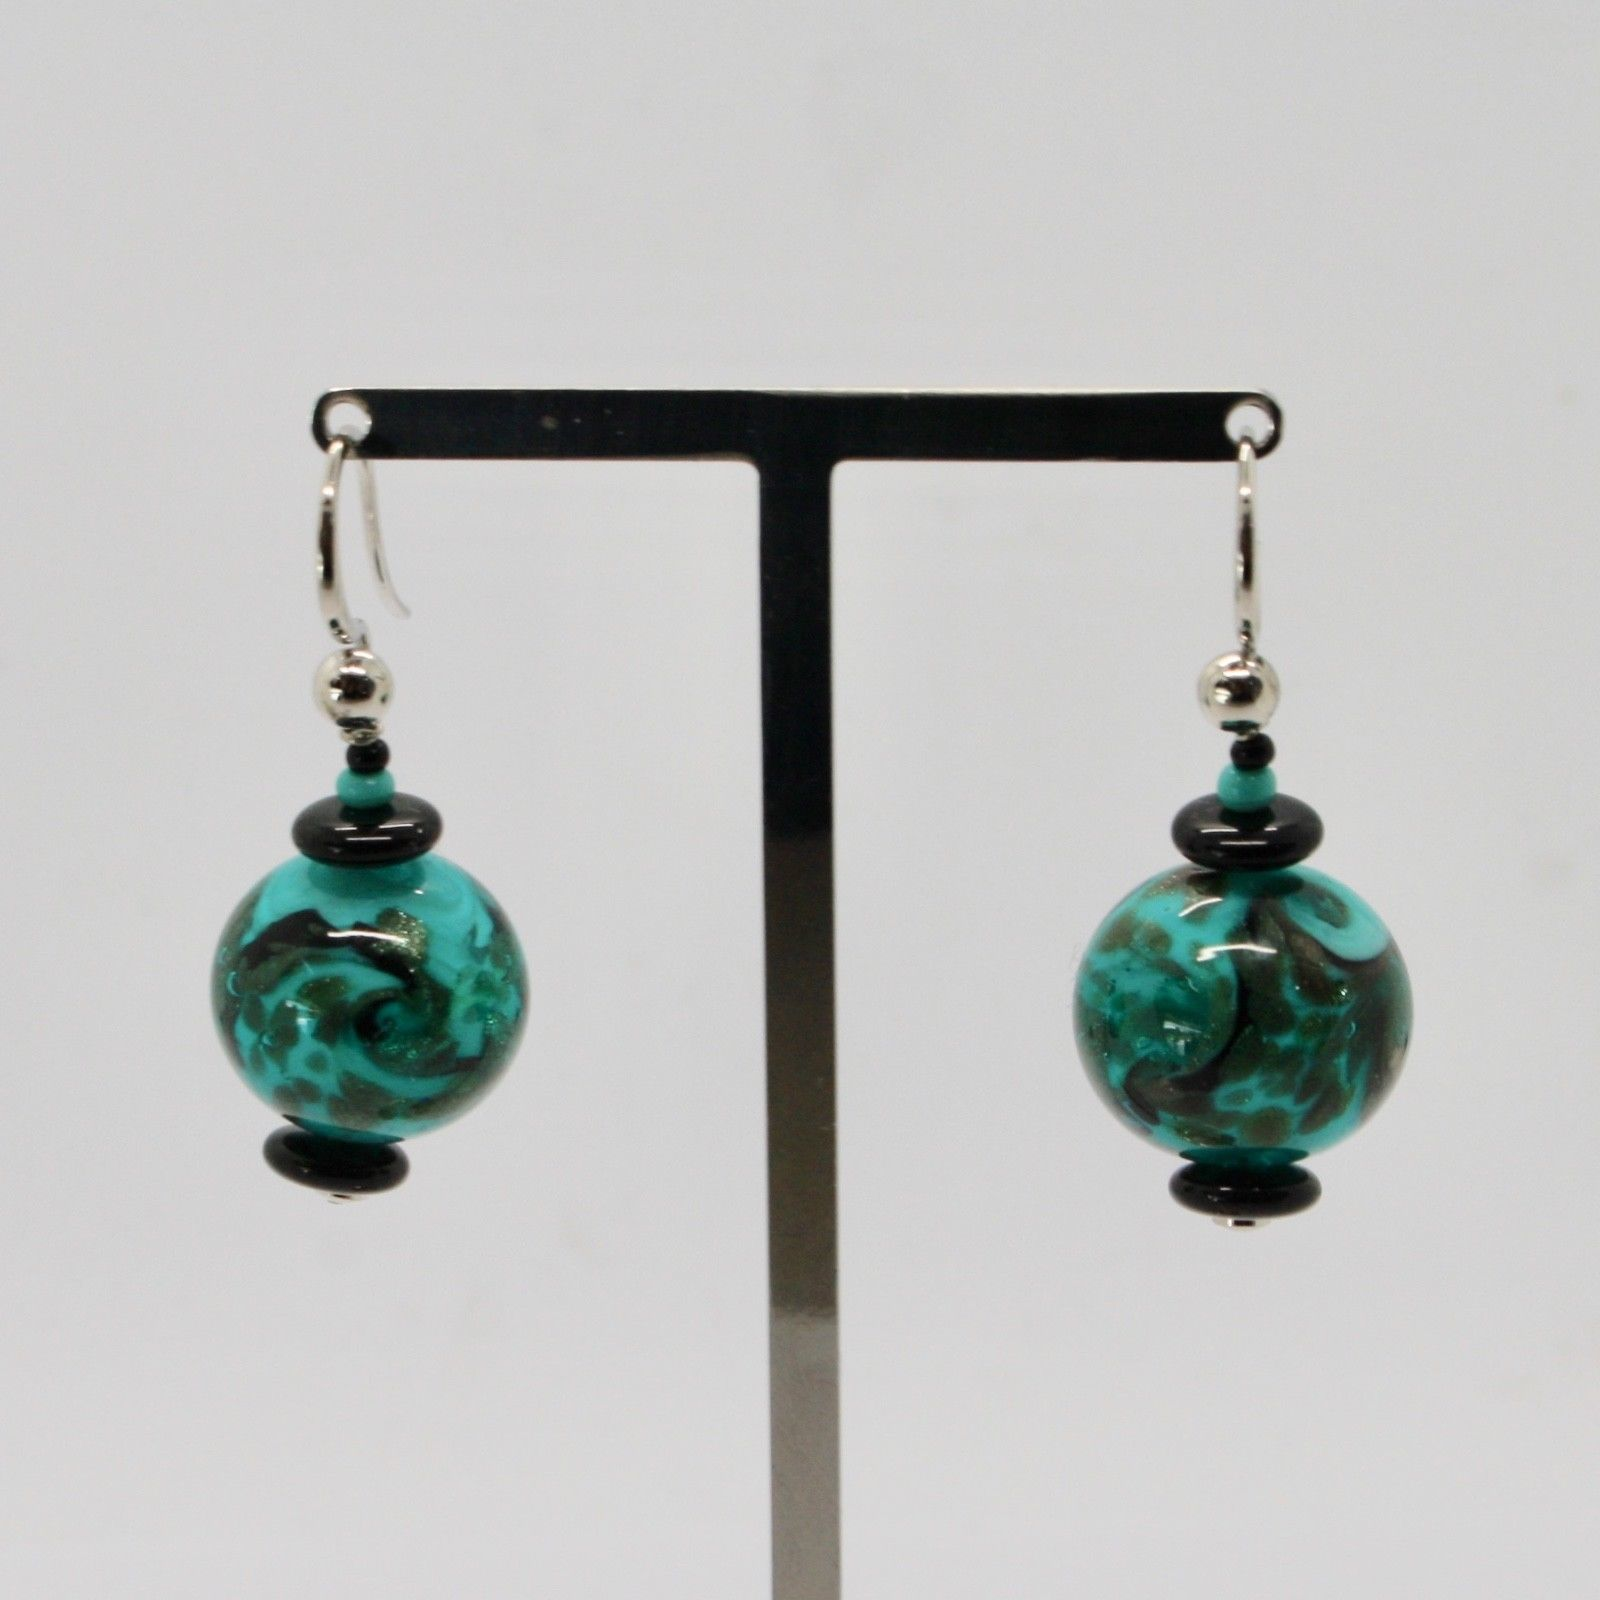 ANTICA MURRINA VENEZIA EARRINGS WITH MULTICOLOR MURANO GLASS AND STEEL OR592A59